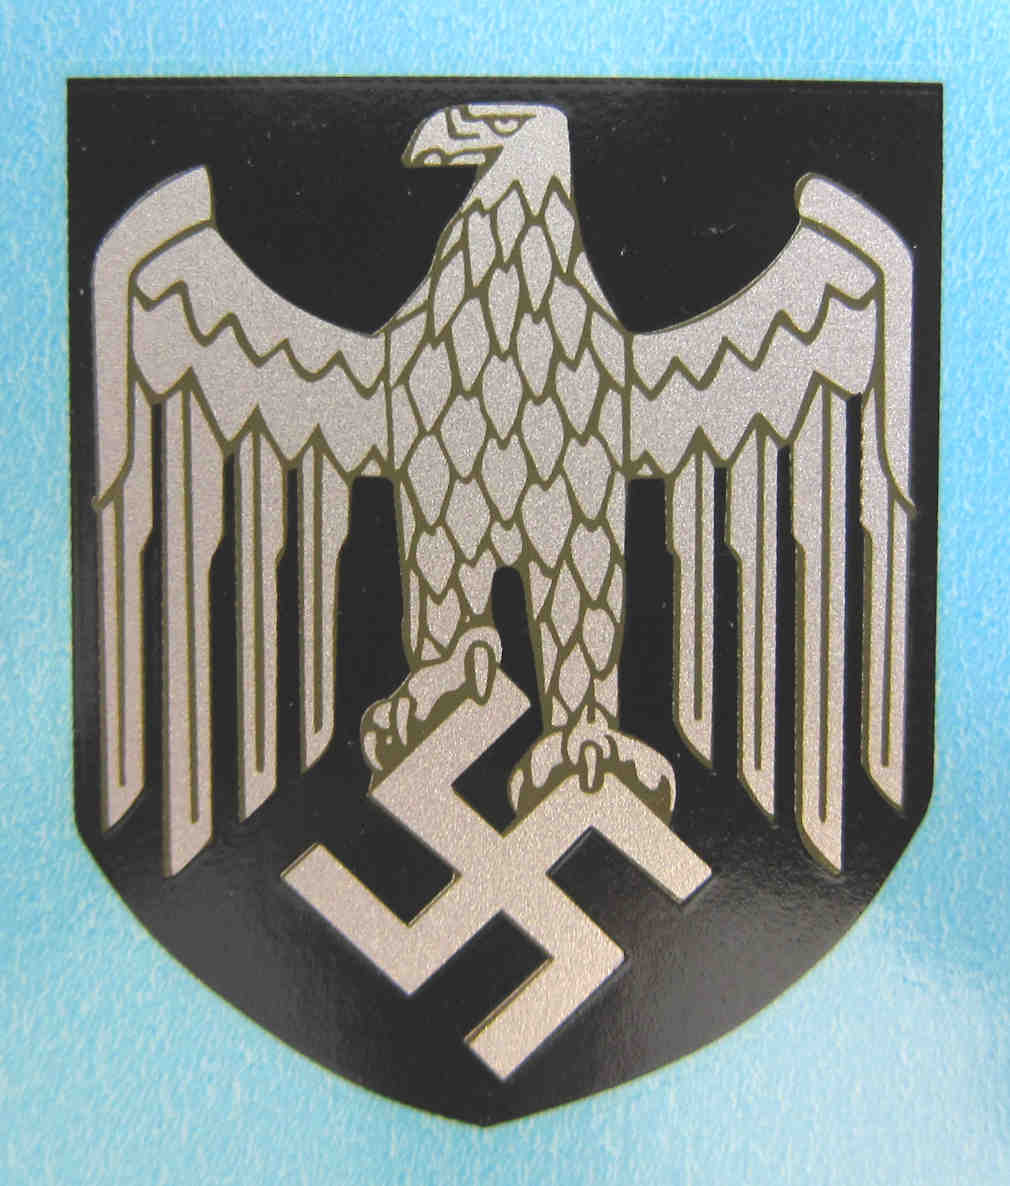 WW2 German Army Helmet Decal NS Eagle 1936 Onward